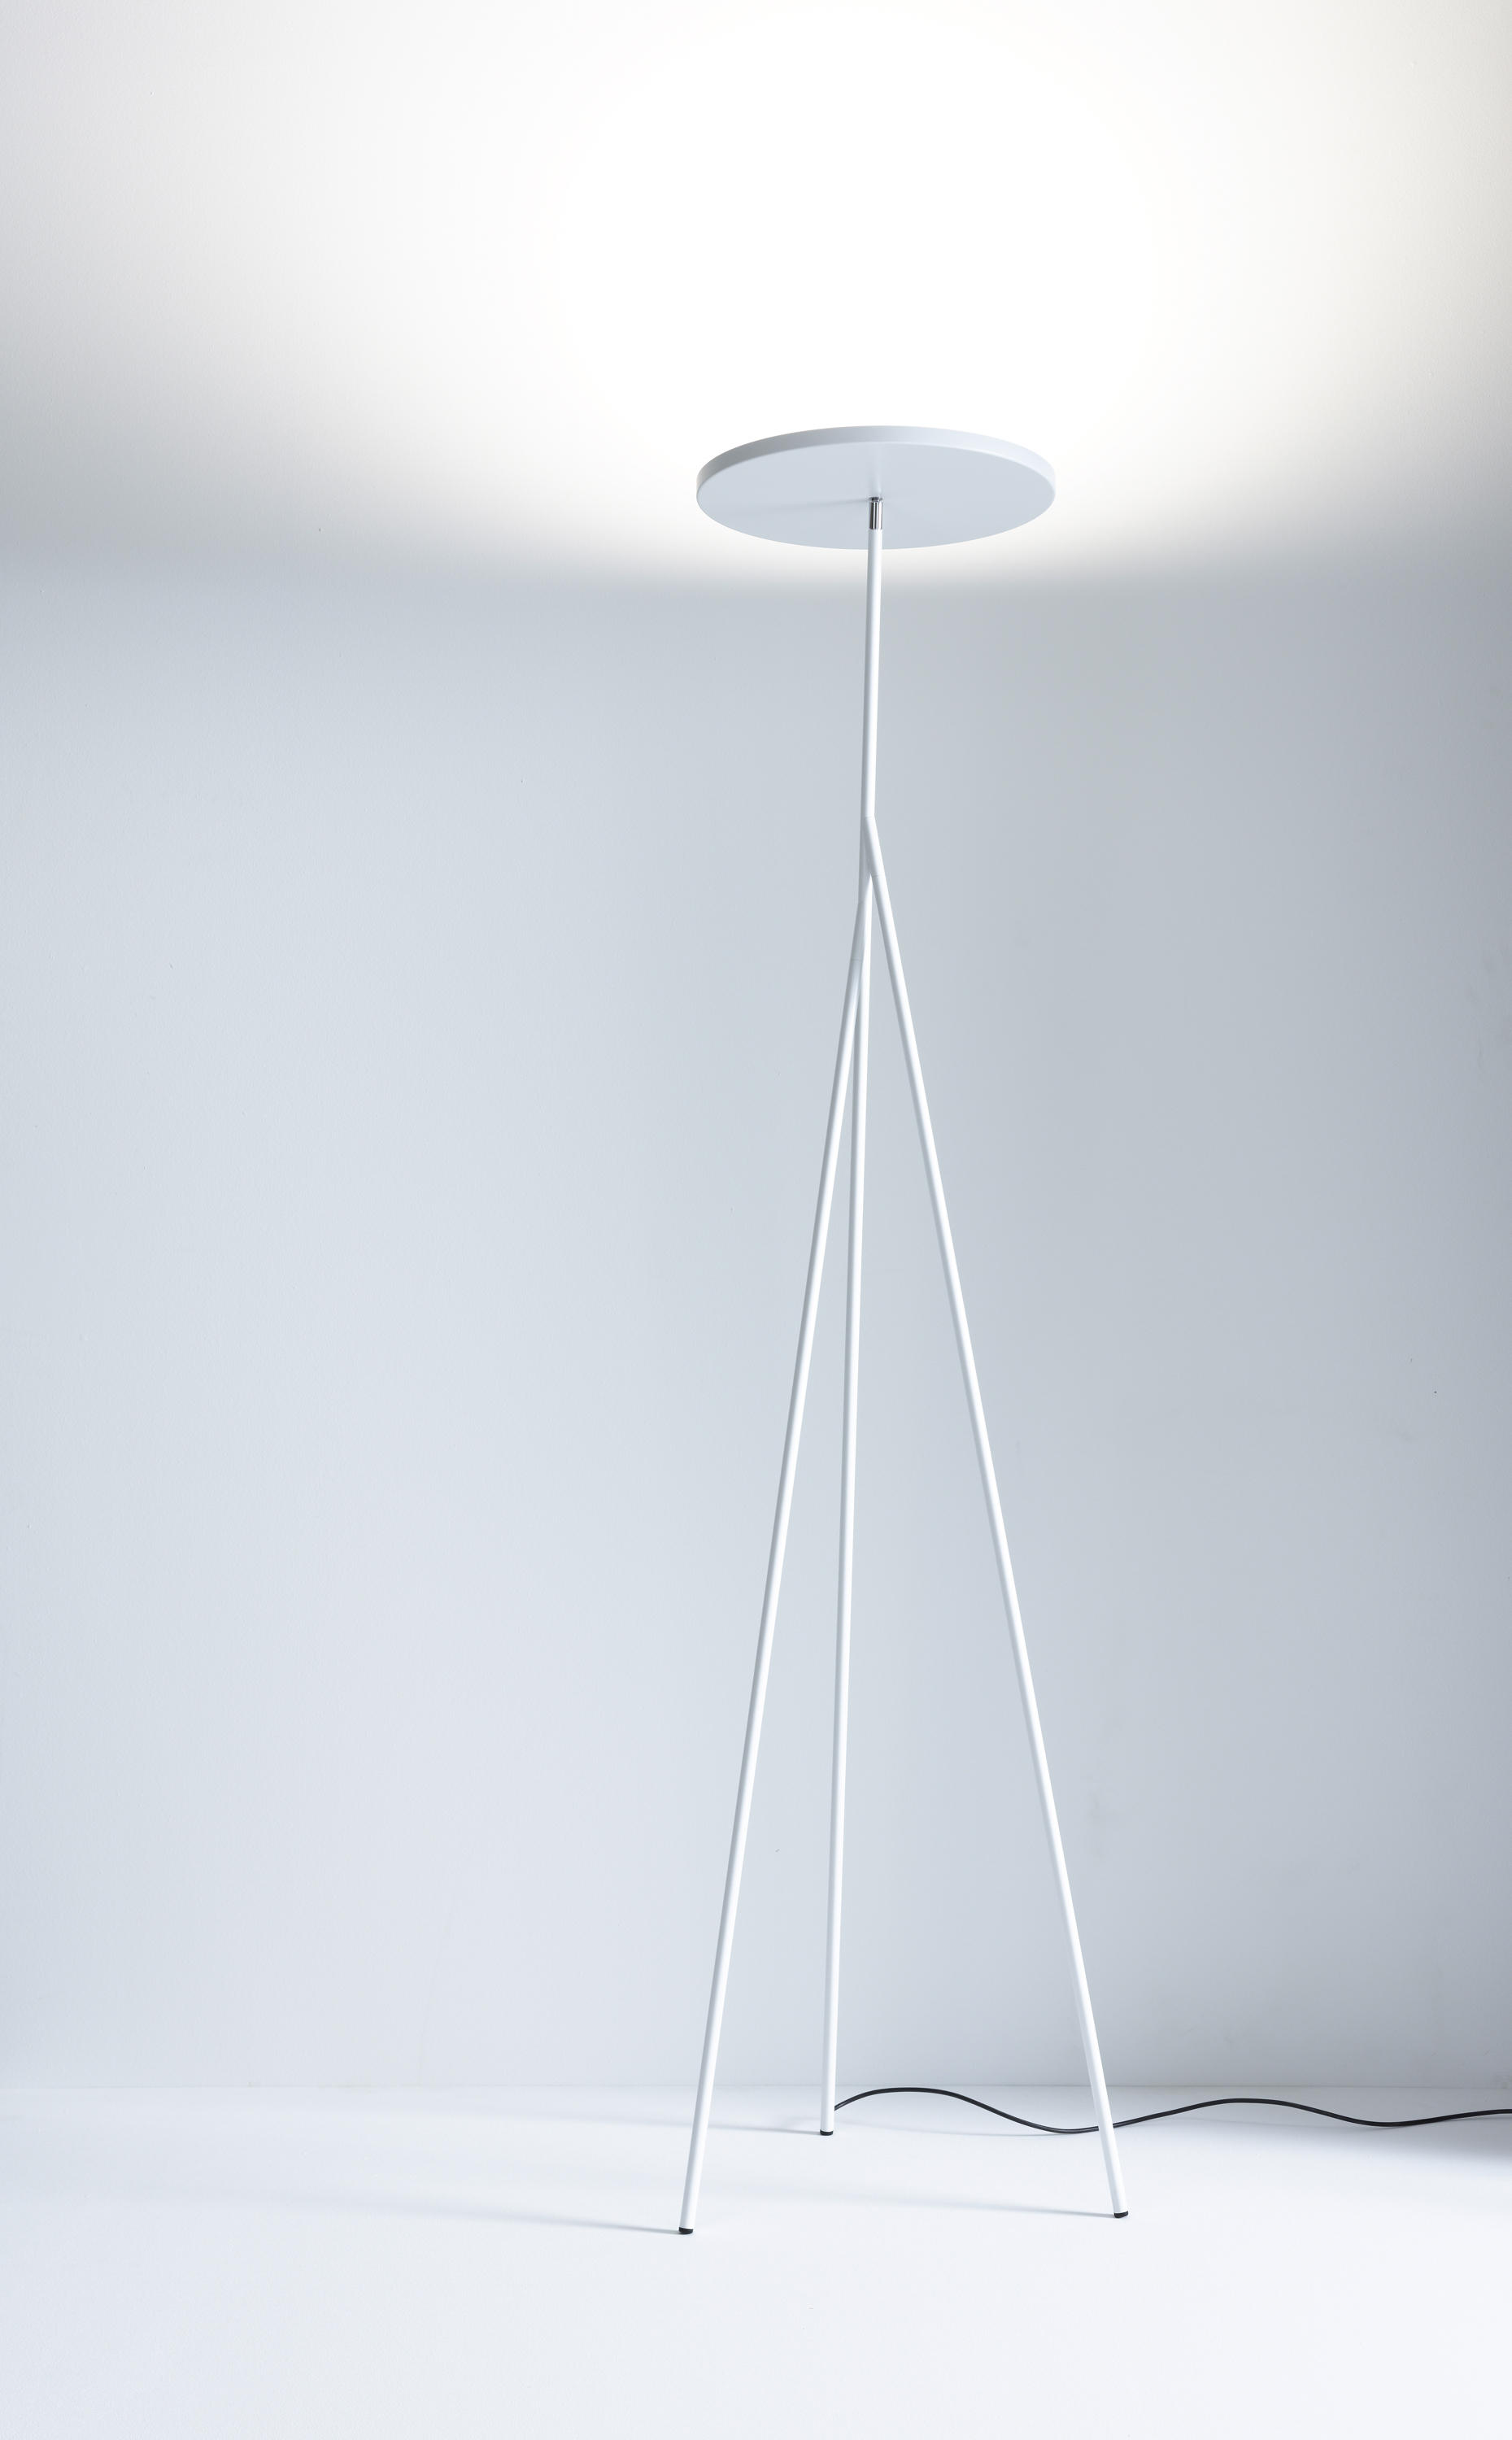 Tidssvarende FARO UPLIGHT - Free-standing lights from Anta Leuchten | Architonic FO-85